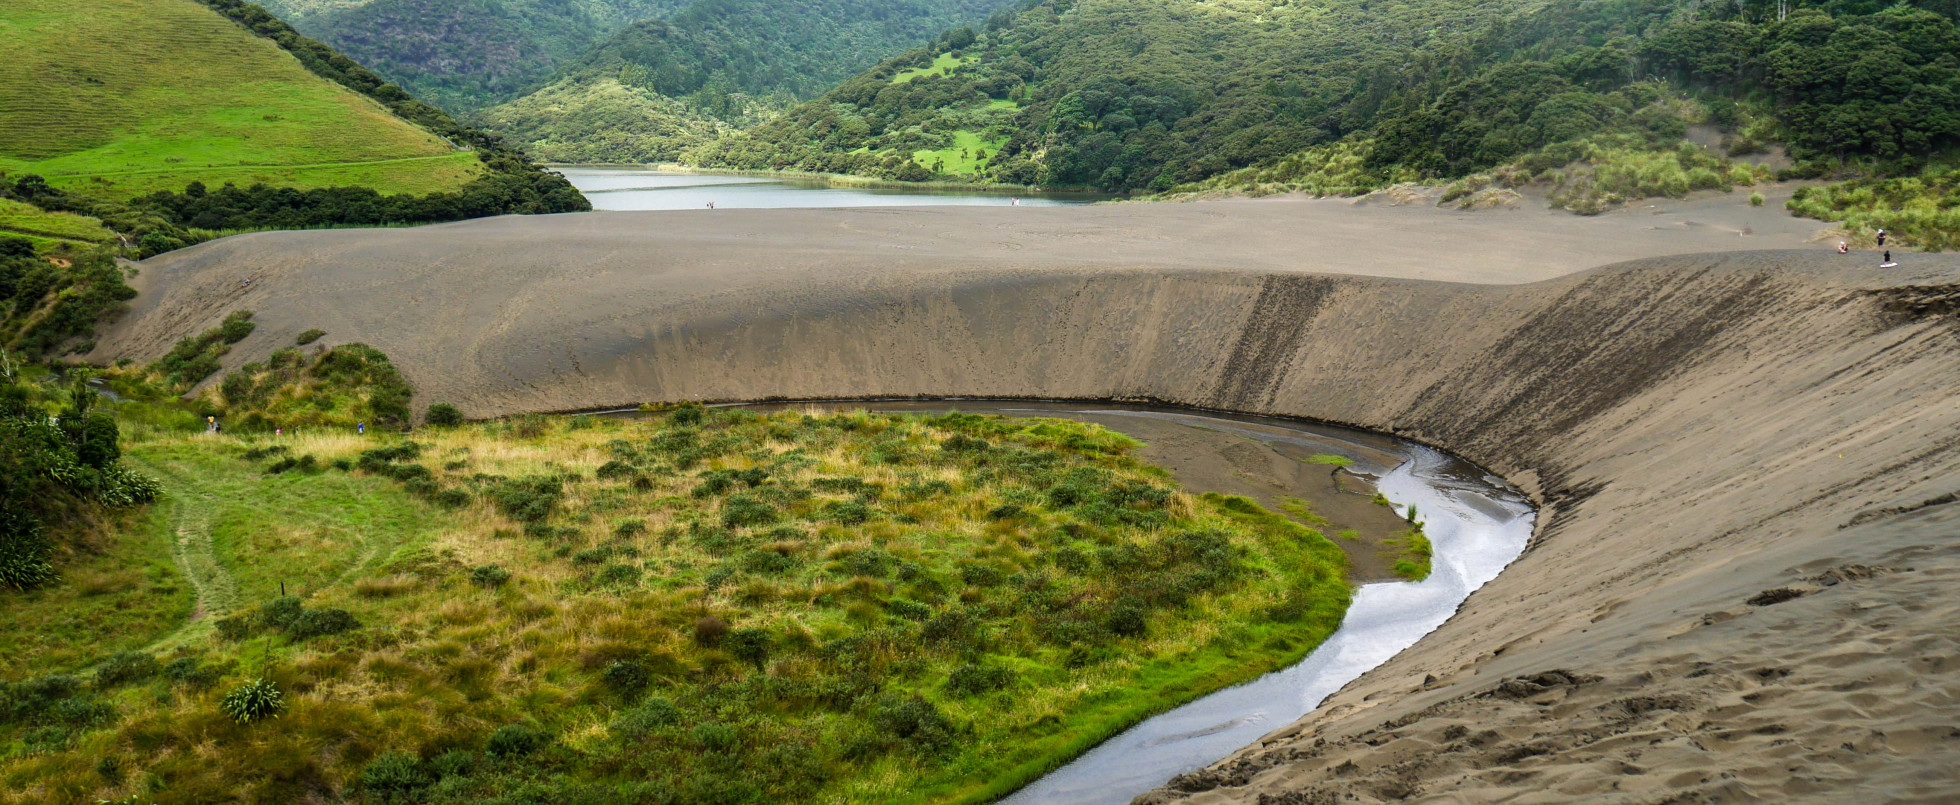 Lake Wainamu: The Silver River